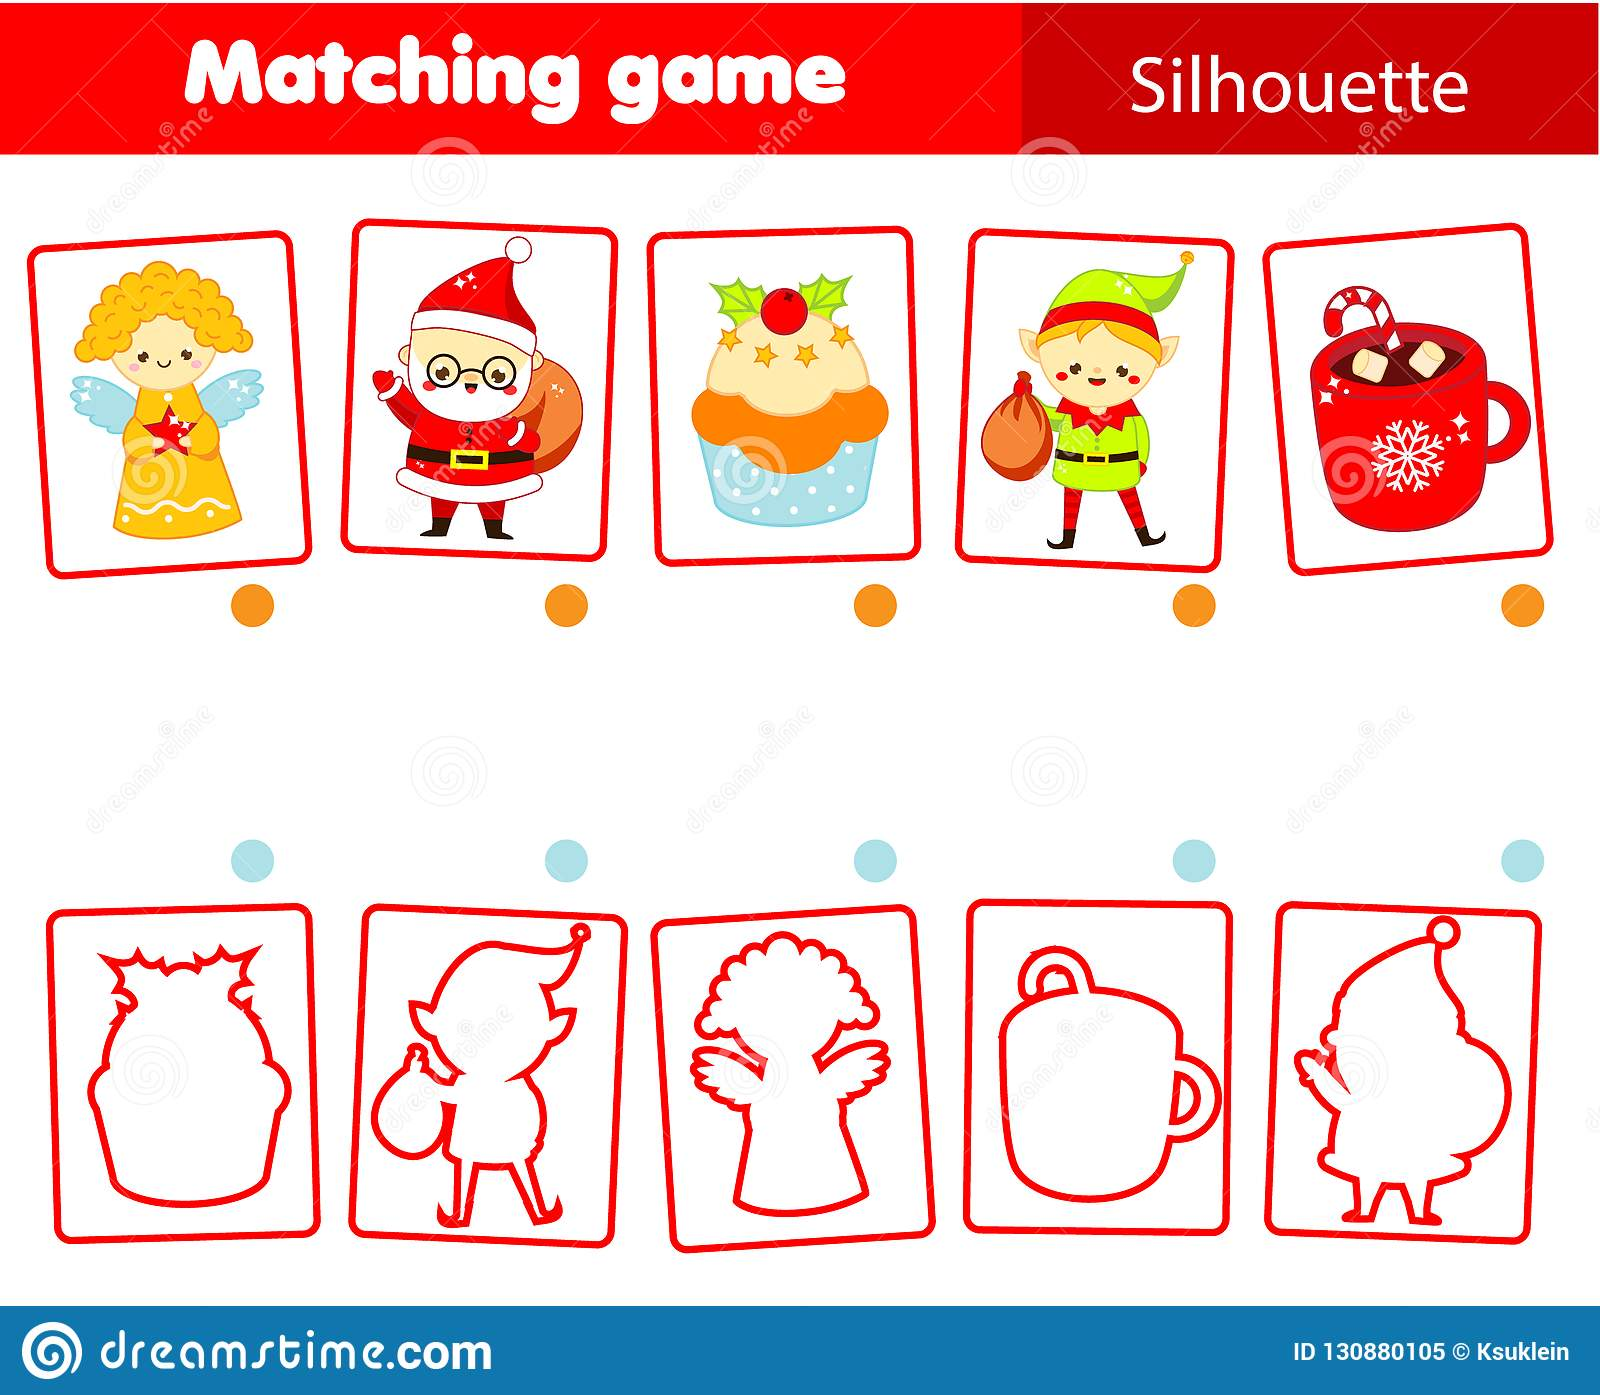 silhouette matching game kids activity christmas and new year theme fun page for toddlers stock vector illustration of coffee learning 130880105 https www dreamstime com silhouette matching game kids activity christmas new year theme fun page toddlers silhouette matching game children image130880105